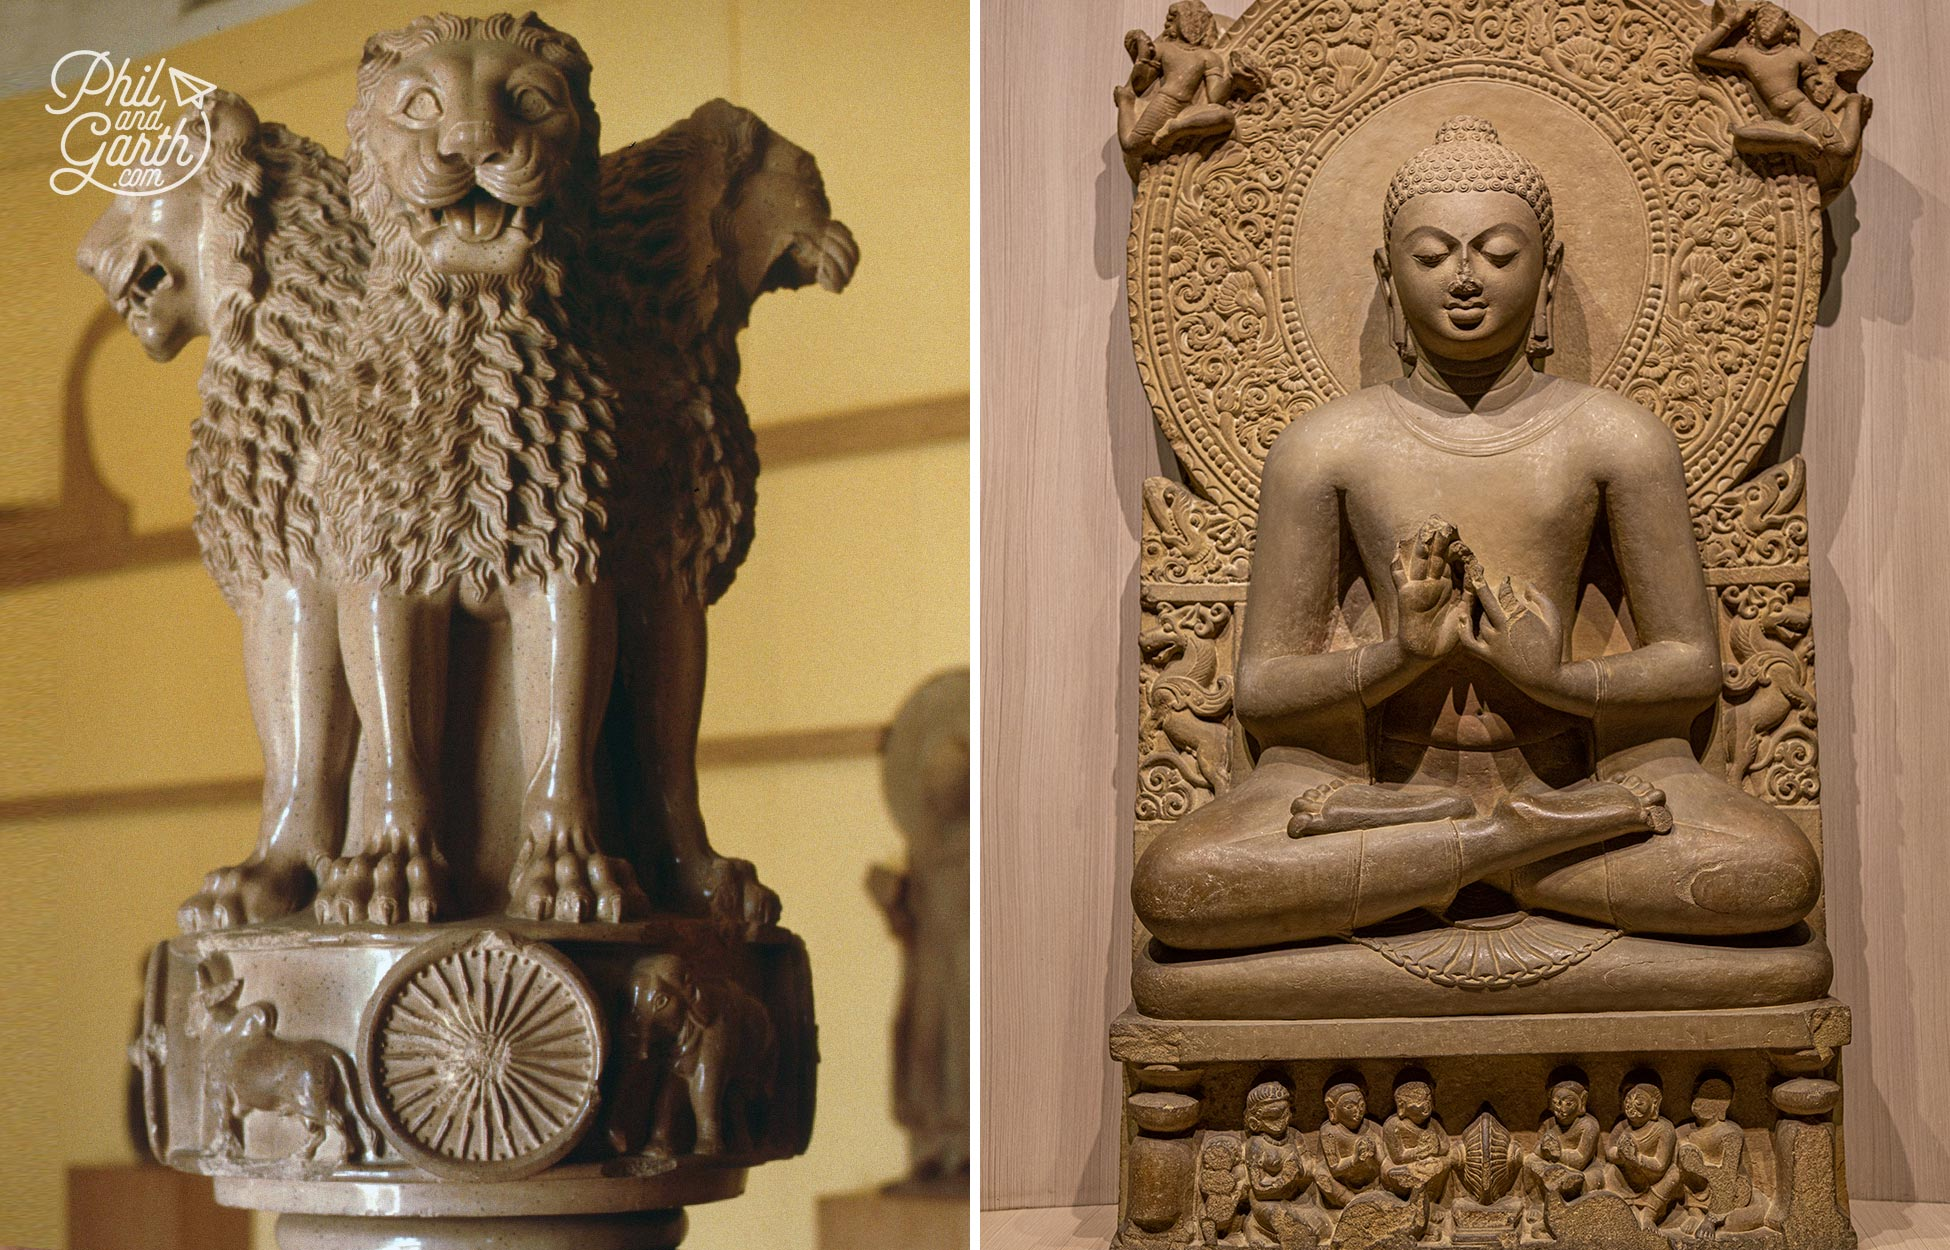 Two star attractions - The Lion Capital of Ashoka and a A statue of Buddha in the preaching position